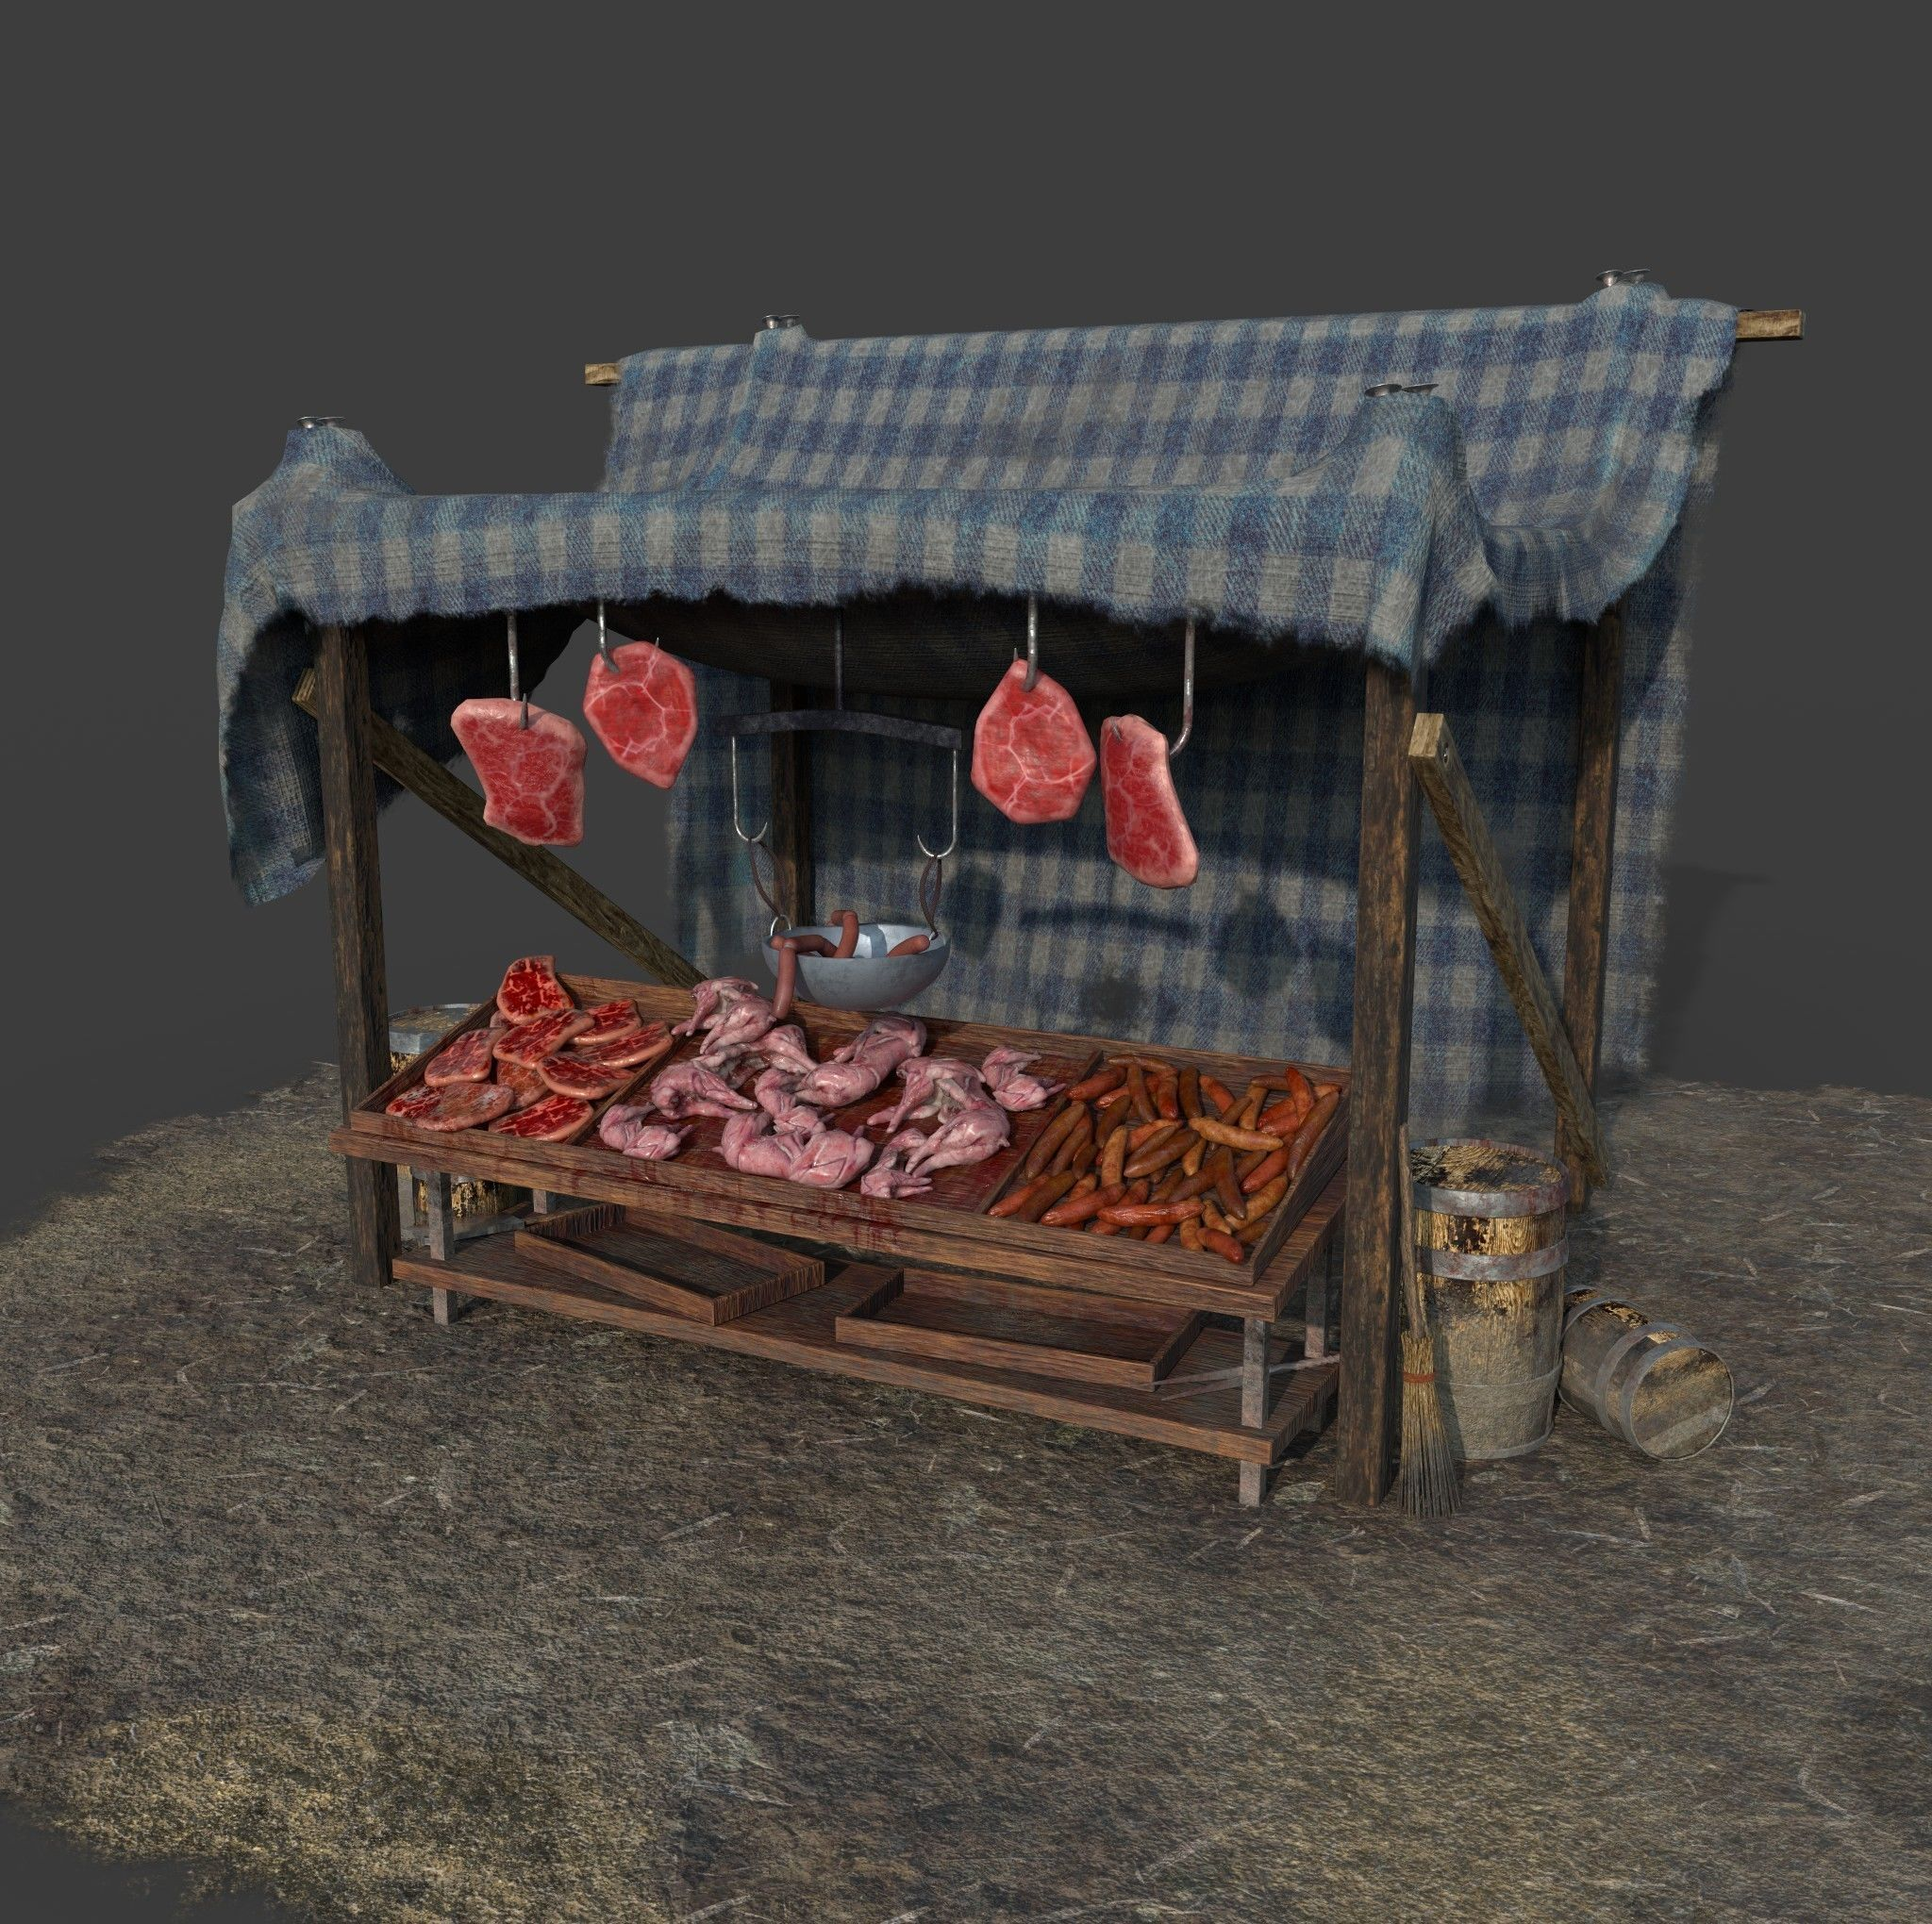 Medieval Style Meat Stall